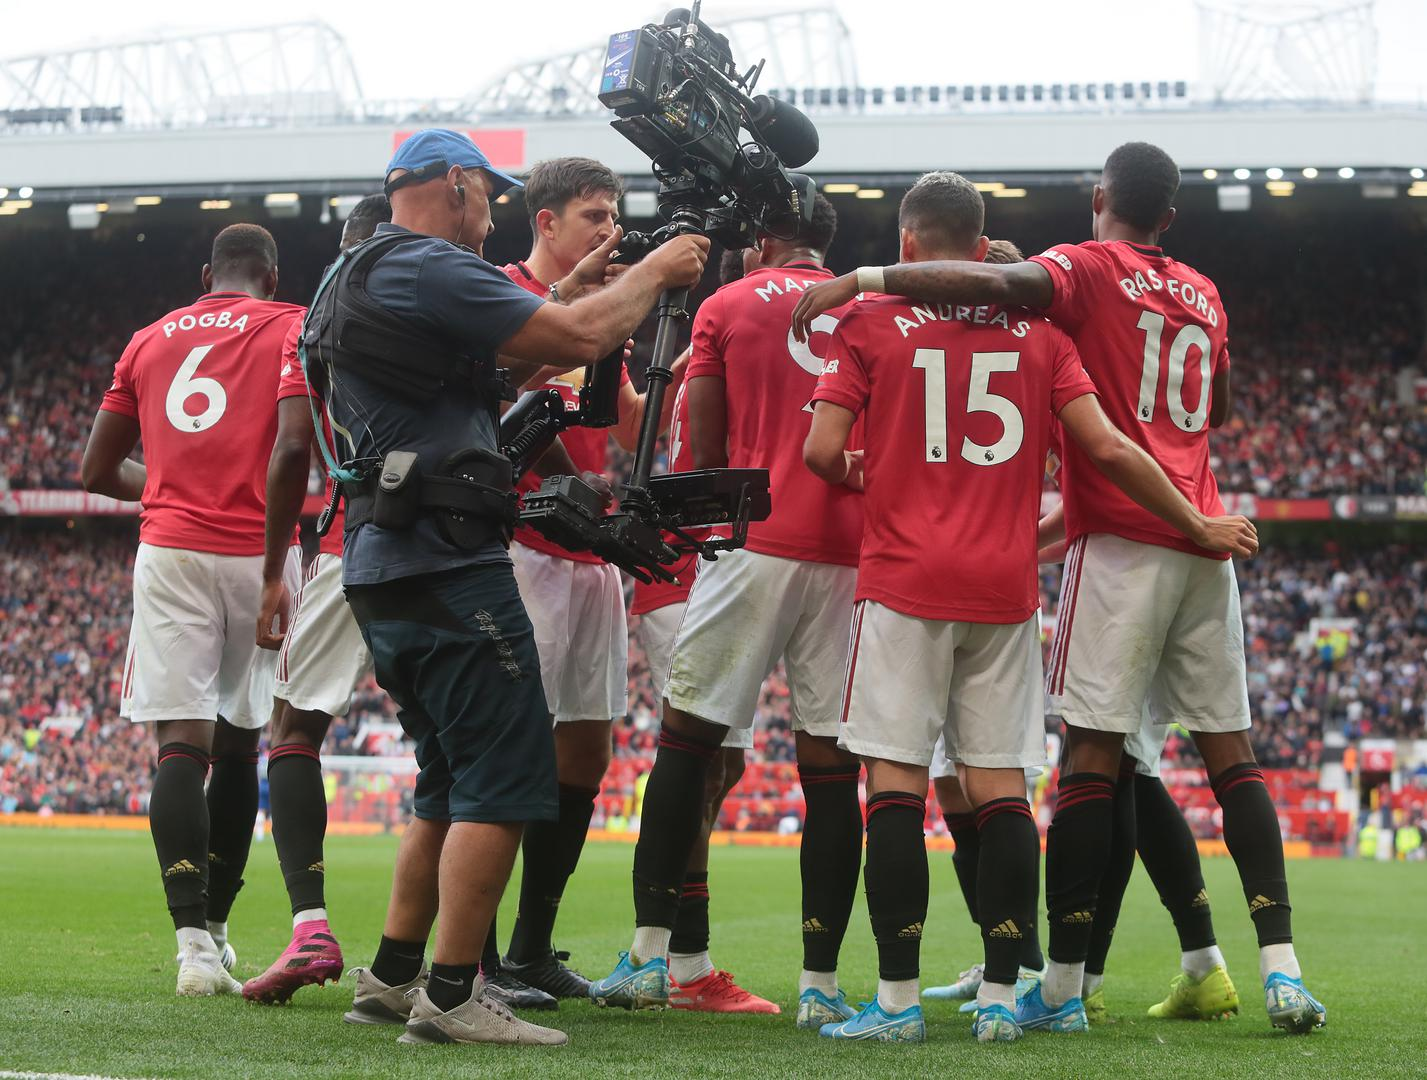 United players celebrating at Old Trafford.